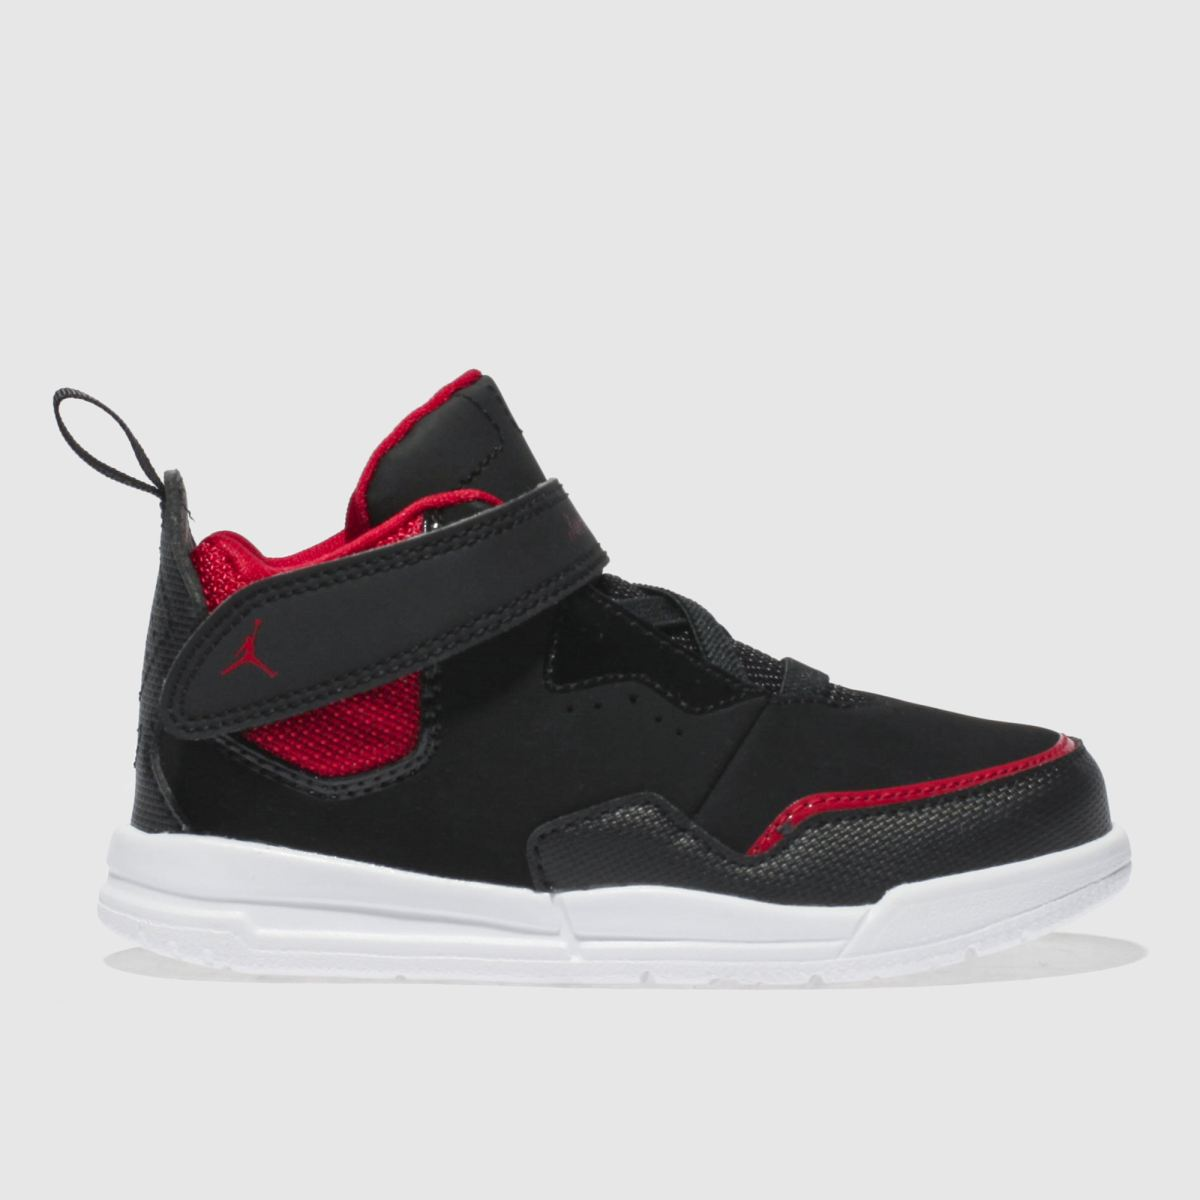 online store 54b87 d20c3 Nike Jordan Black   Red Courtside 23 Trainers Toddler